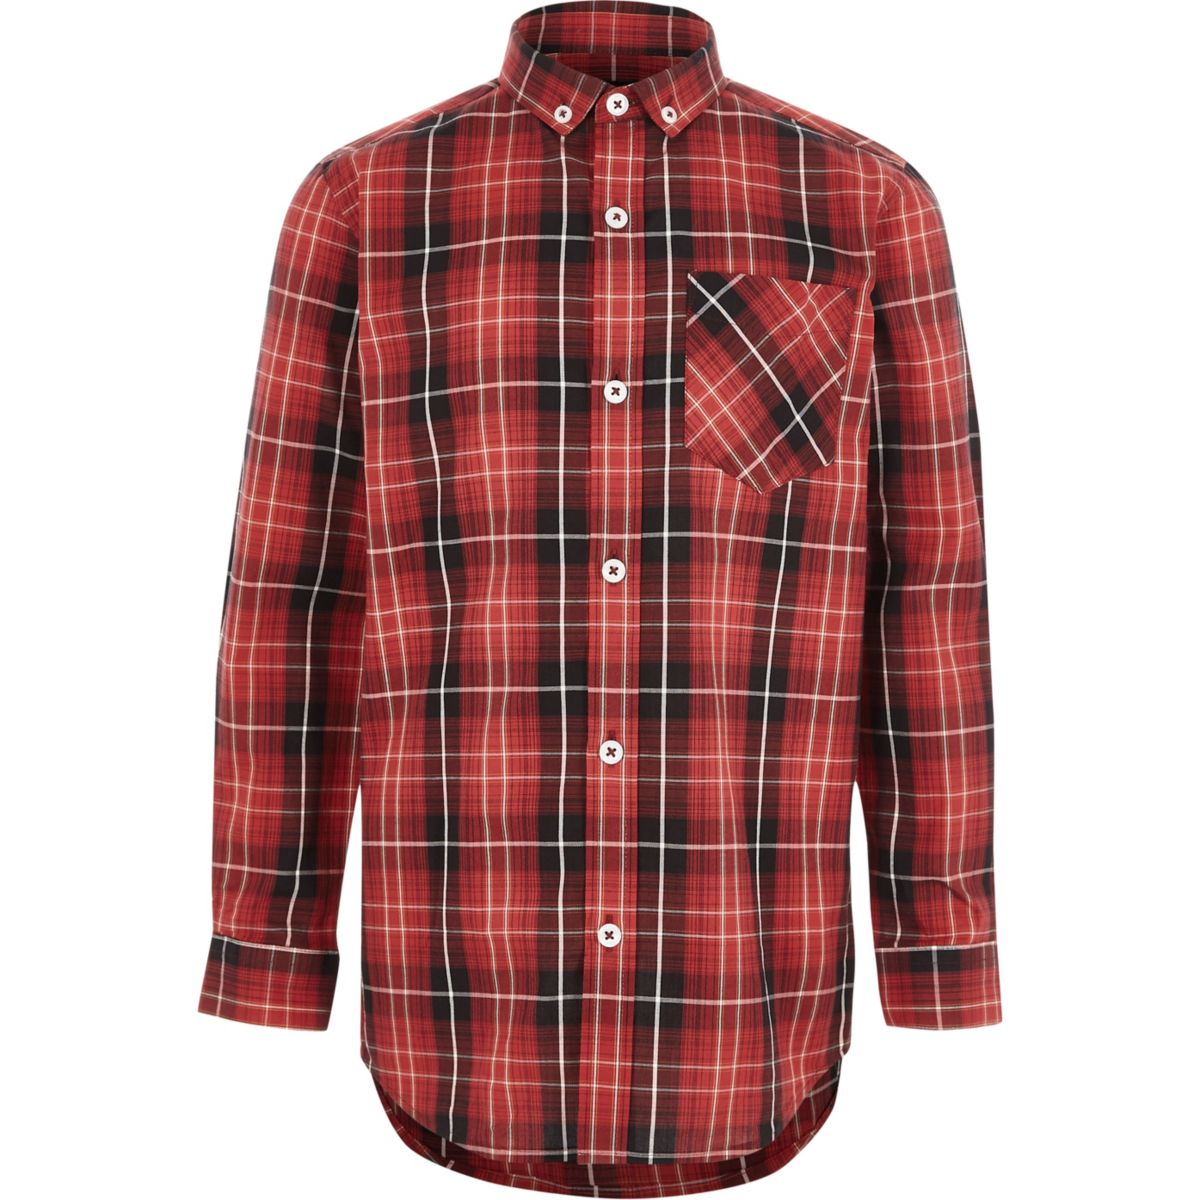 Competitive Red L Long Sleeves online, Gamiss offers you Check Panel Long Sleeve Shirt at $, we also offer Wholesale service.